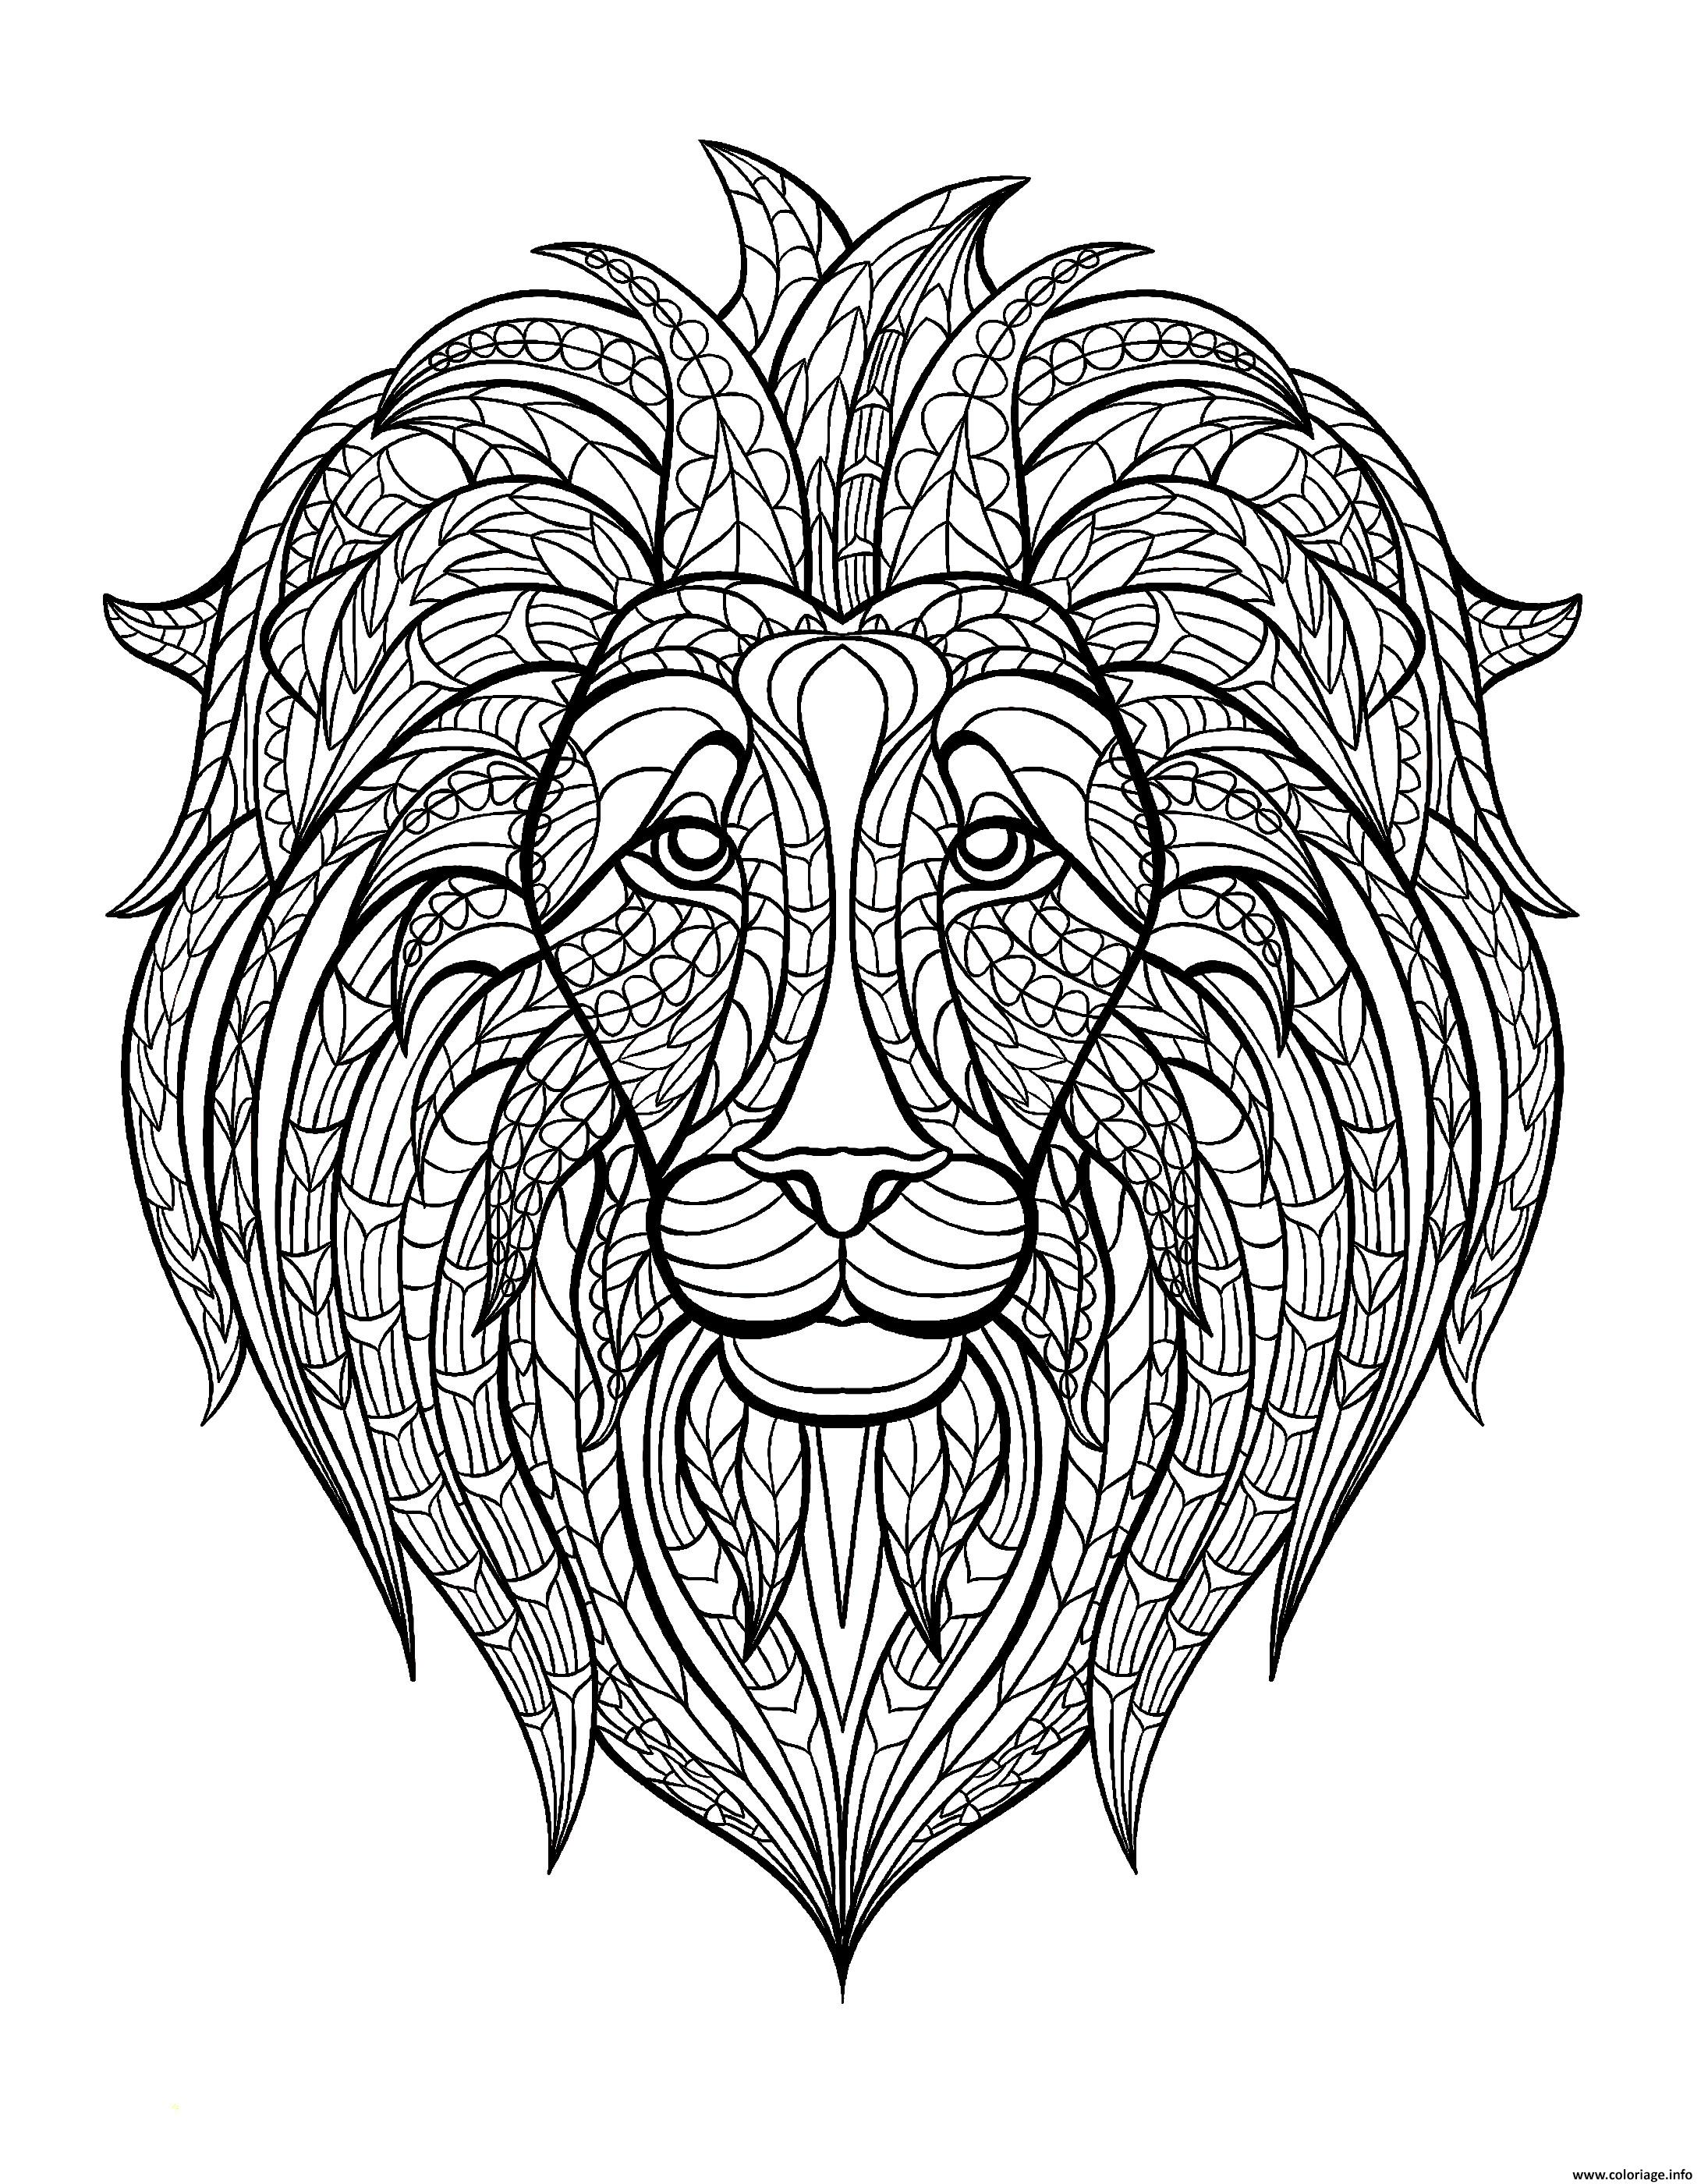 coloriage adulte tete lion. Black Bedroom Furniture Sets. Home Design Ideas